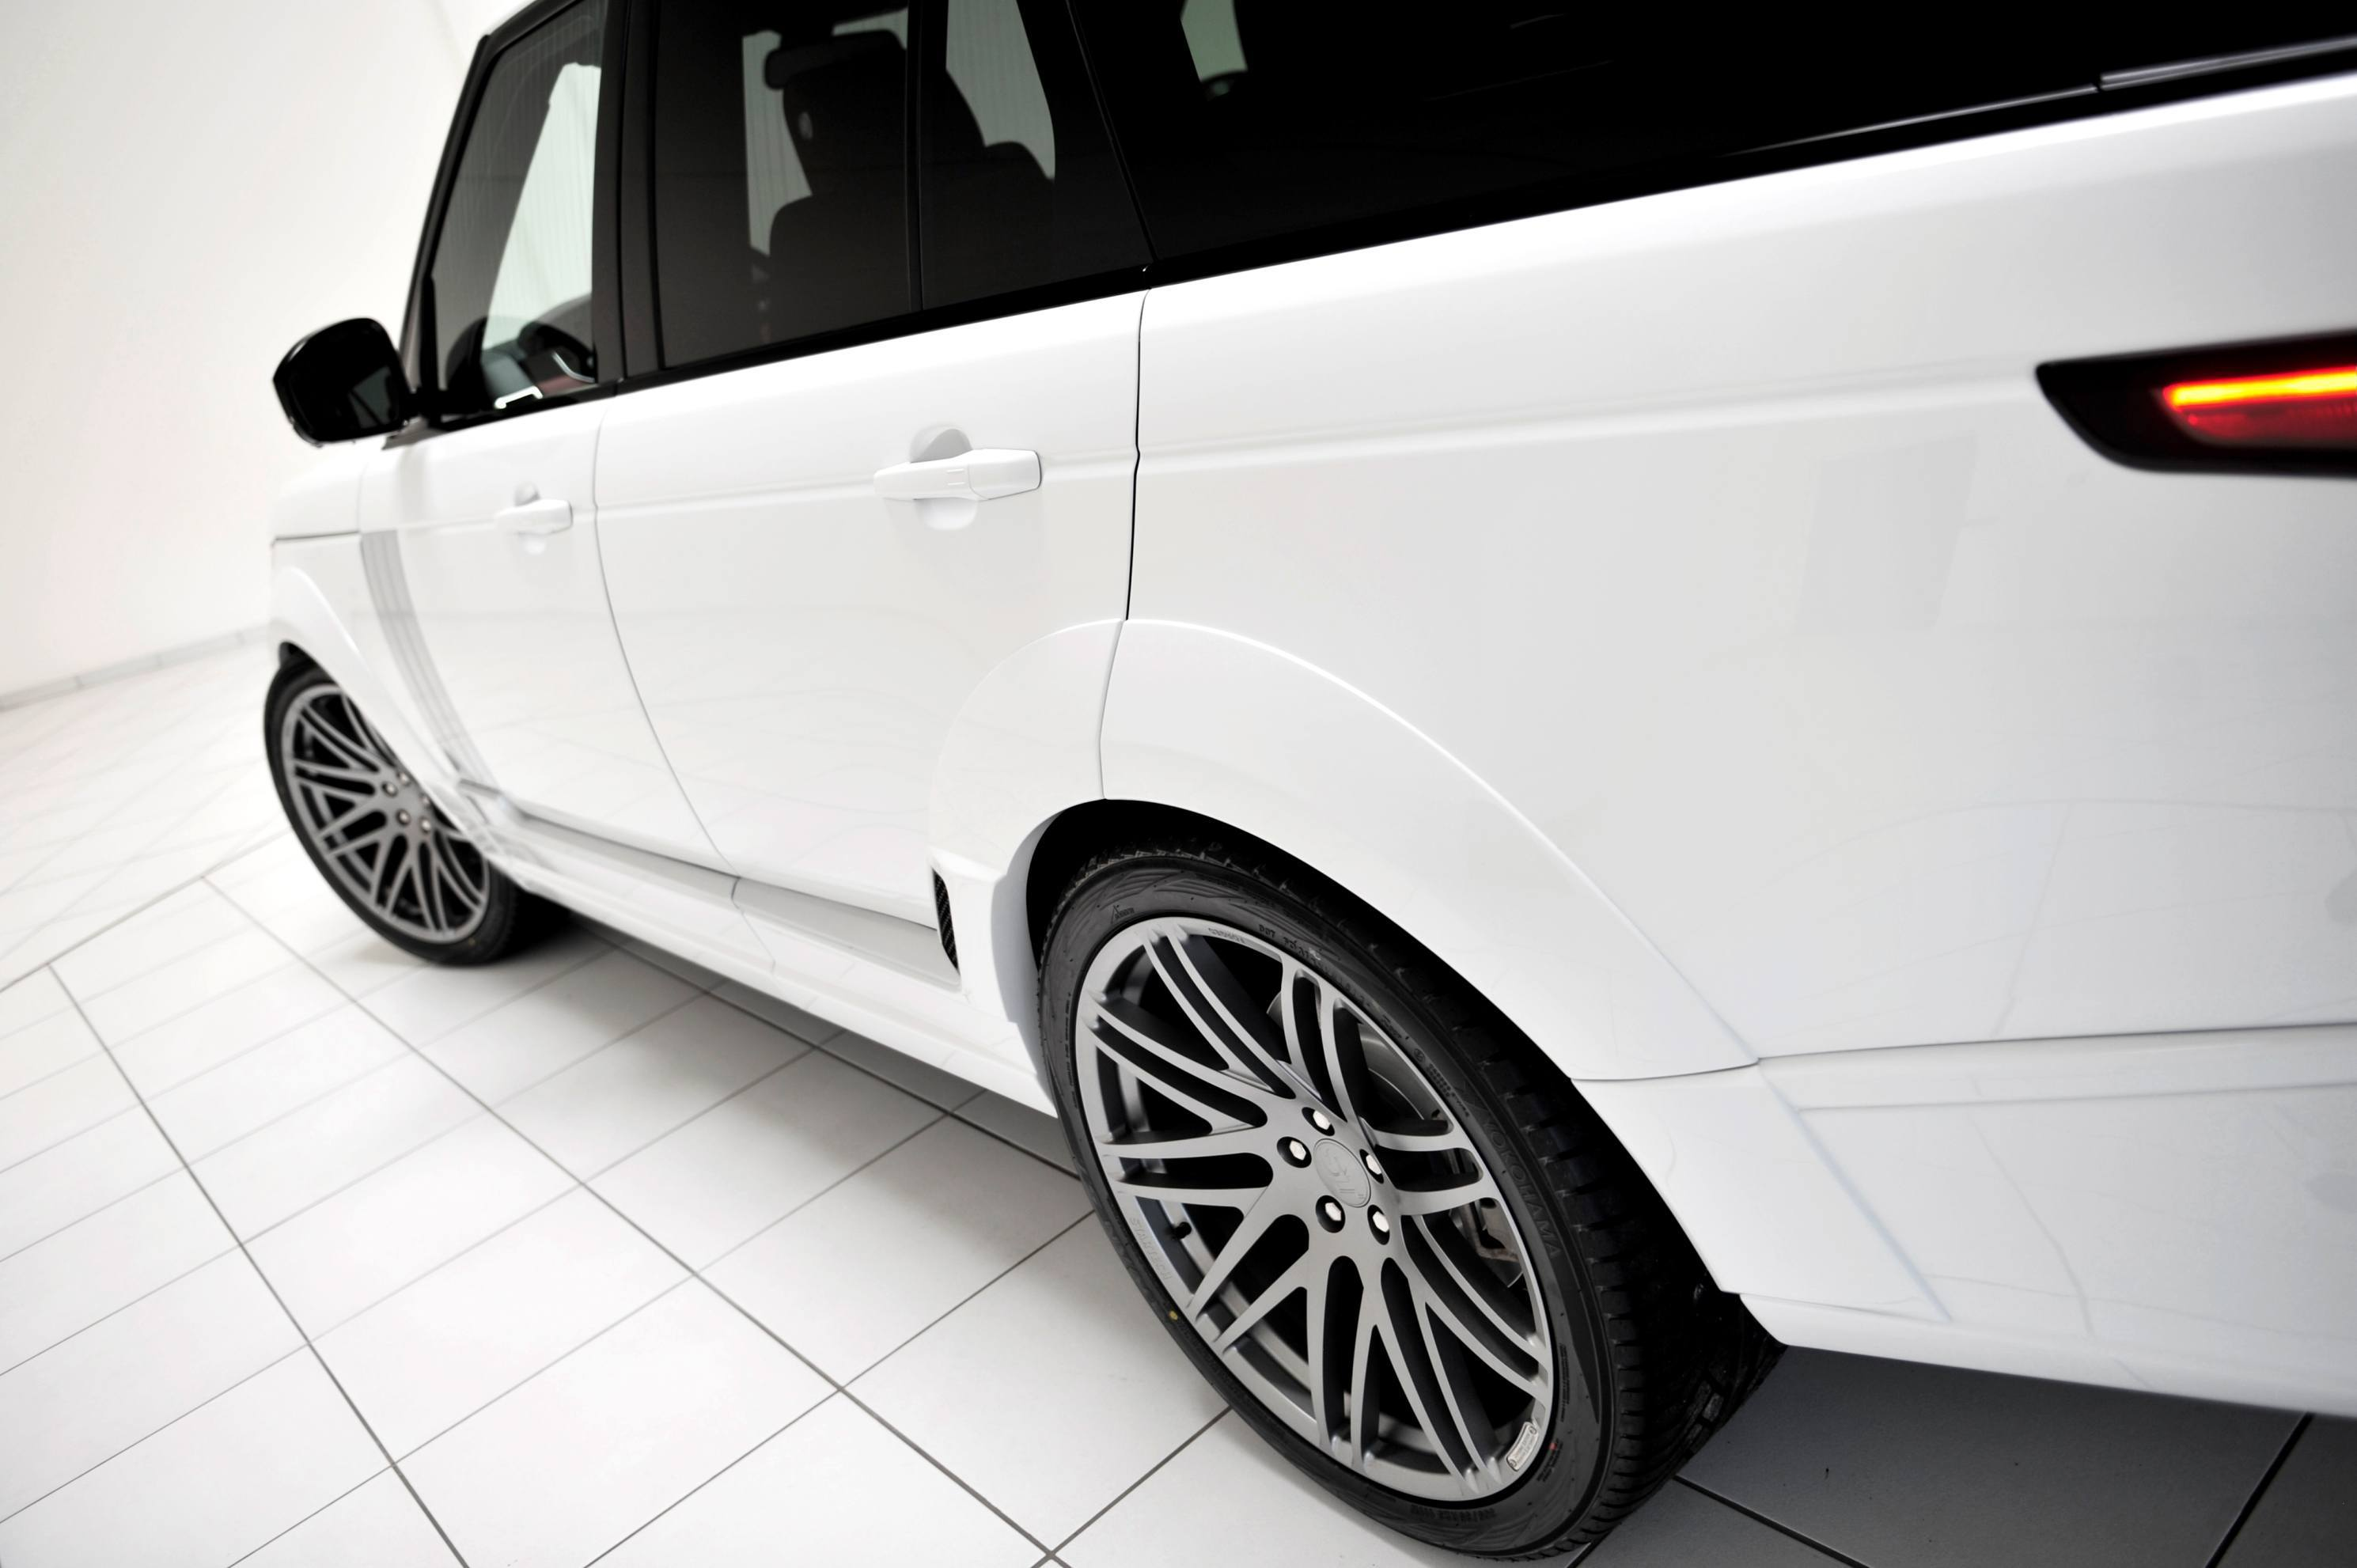 2013-2015 Range Rover By StarTech Brings Best of BRABUS Tech to Lux SUV King 37